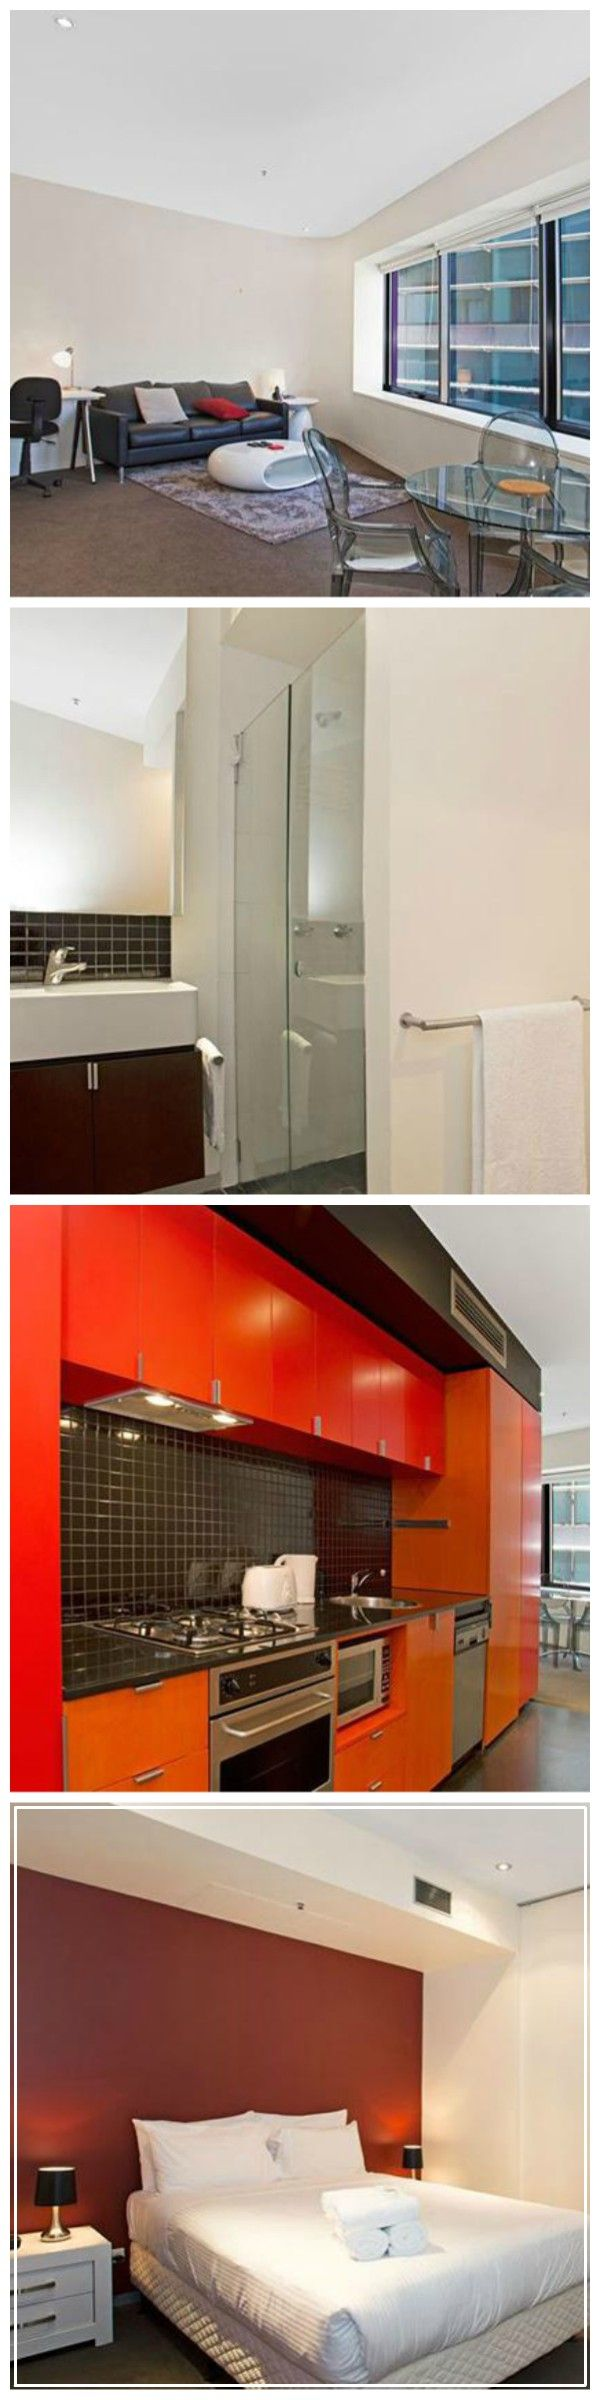 Swanston Street Apartment provides serviced accommodation in the centre of Melbourne, a three minute walk away from Melbourne Central train station. The property is also a two minute walk from the nearest tram stop. The one bedroom apartment features a double bed, one bathroom and a fully equipped kitchen, which includes a gas oven, a microwave and a dishwasher. In the living area there is a HD flat screen TV, and there is free wireless internet provided throughout the stay.